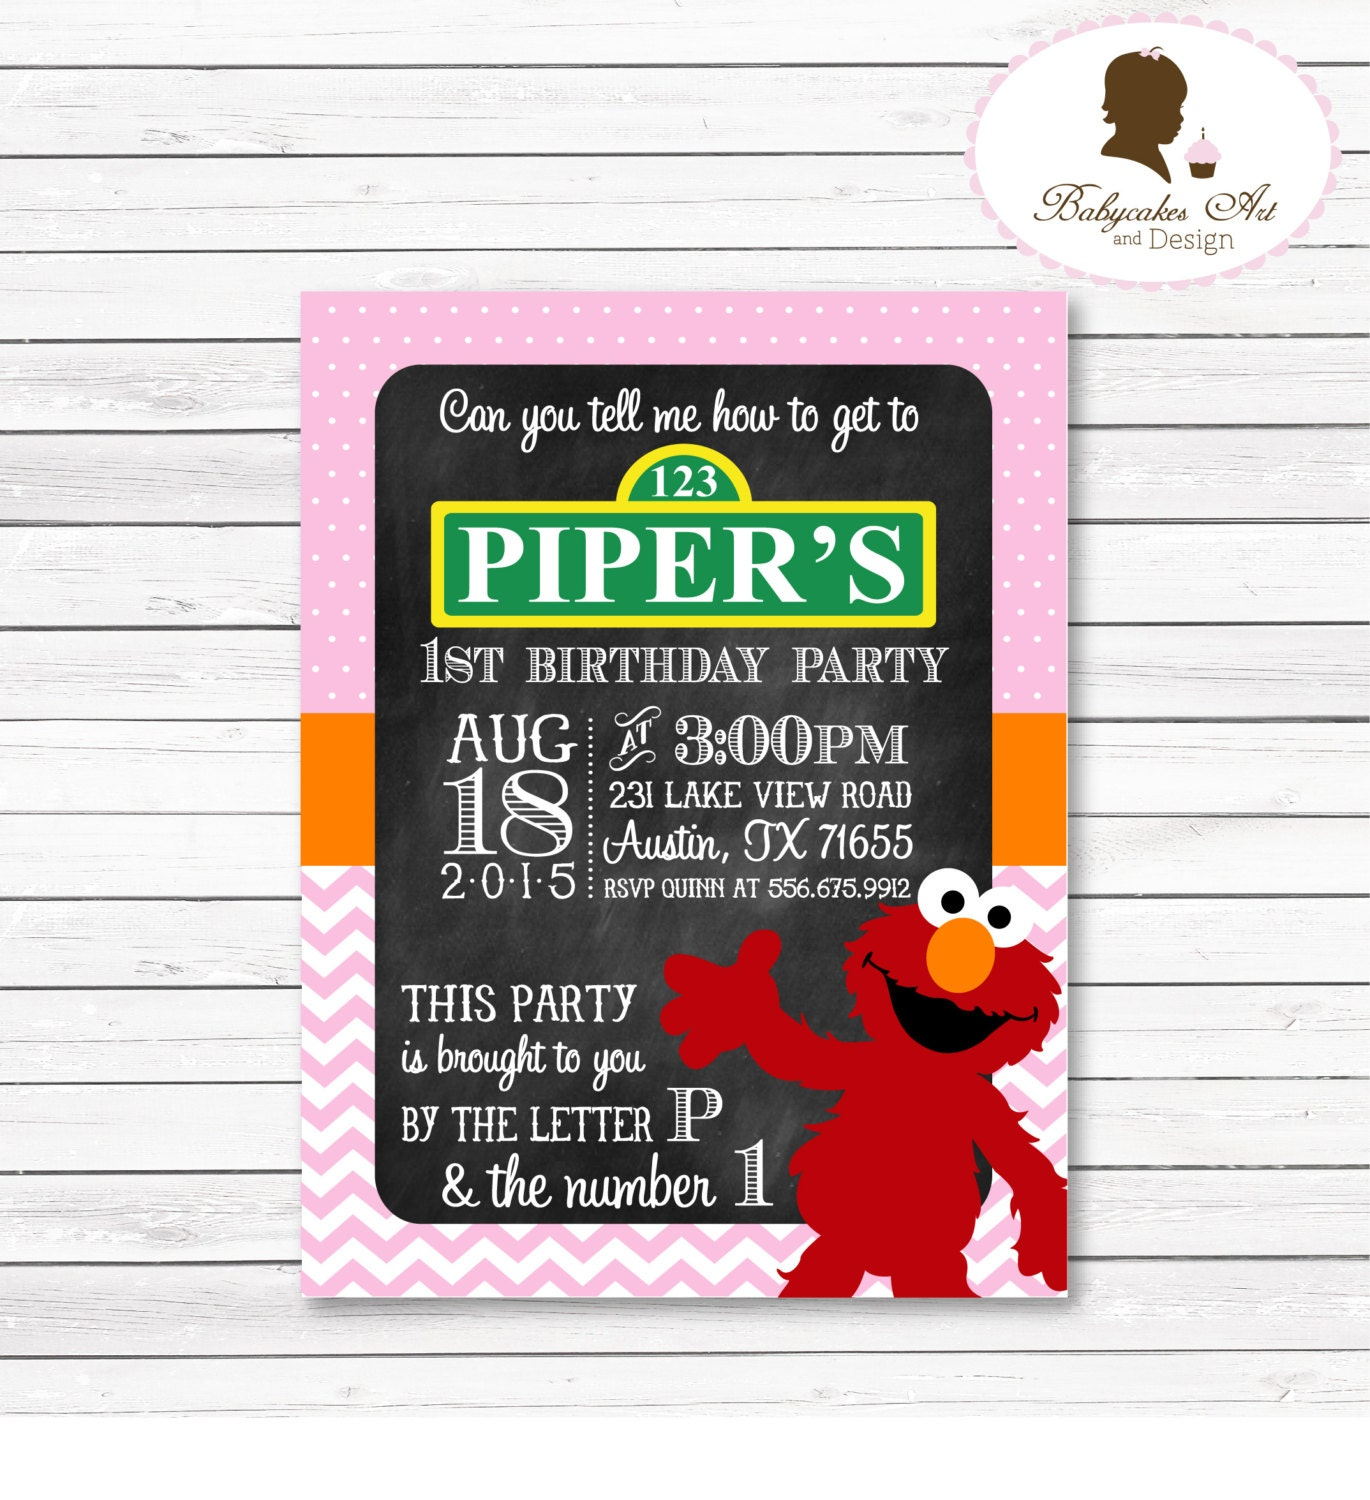 DIY Elmo 1st Birthday Party Invitation Elmo by BabycakesArt